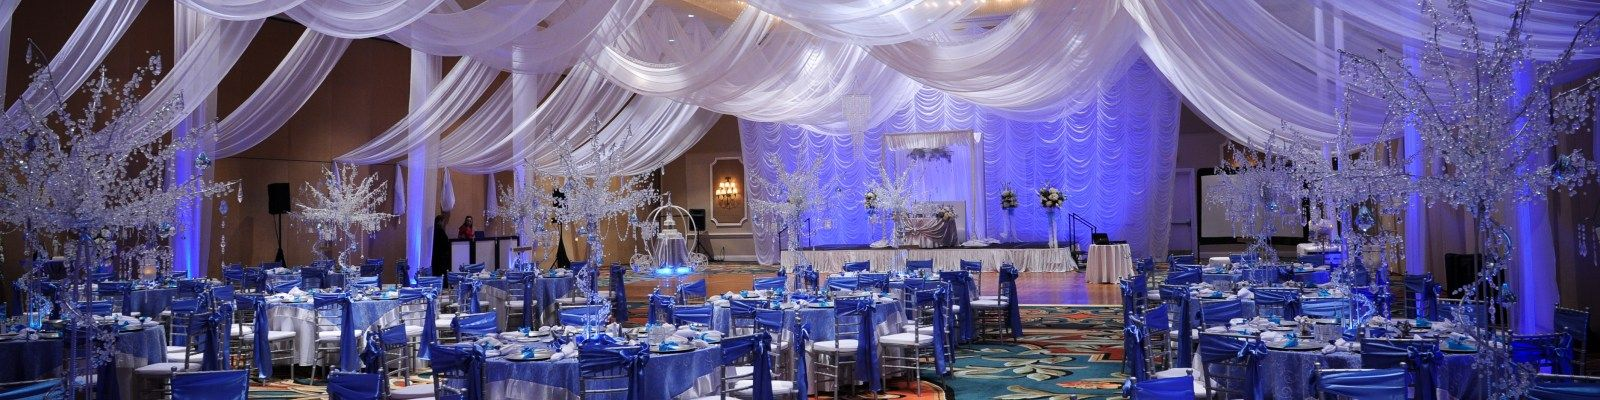 Party rentals in Atlanta & Party Rentals in Atlanta GA | Event Rental Store Atlanta Georgia ...